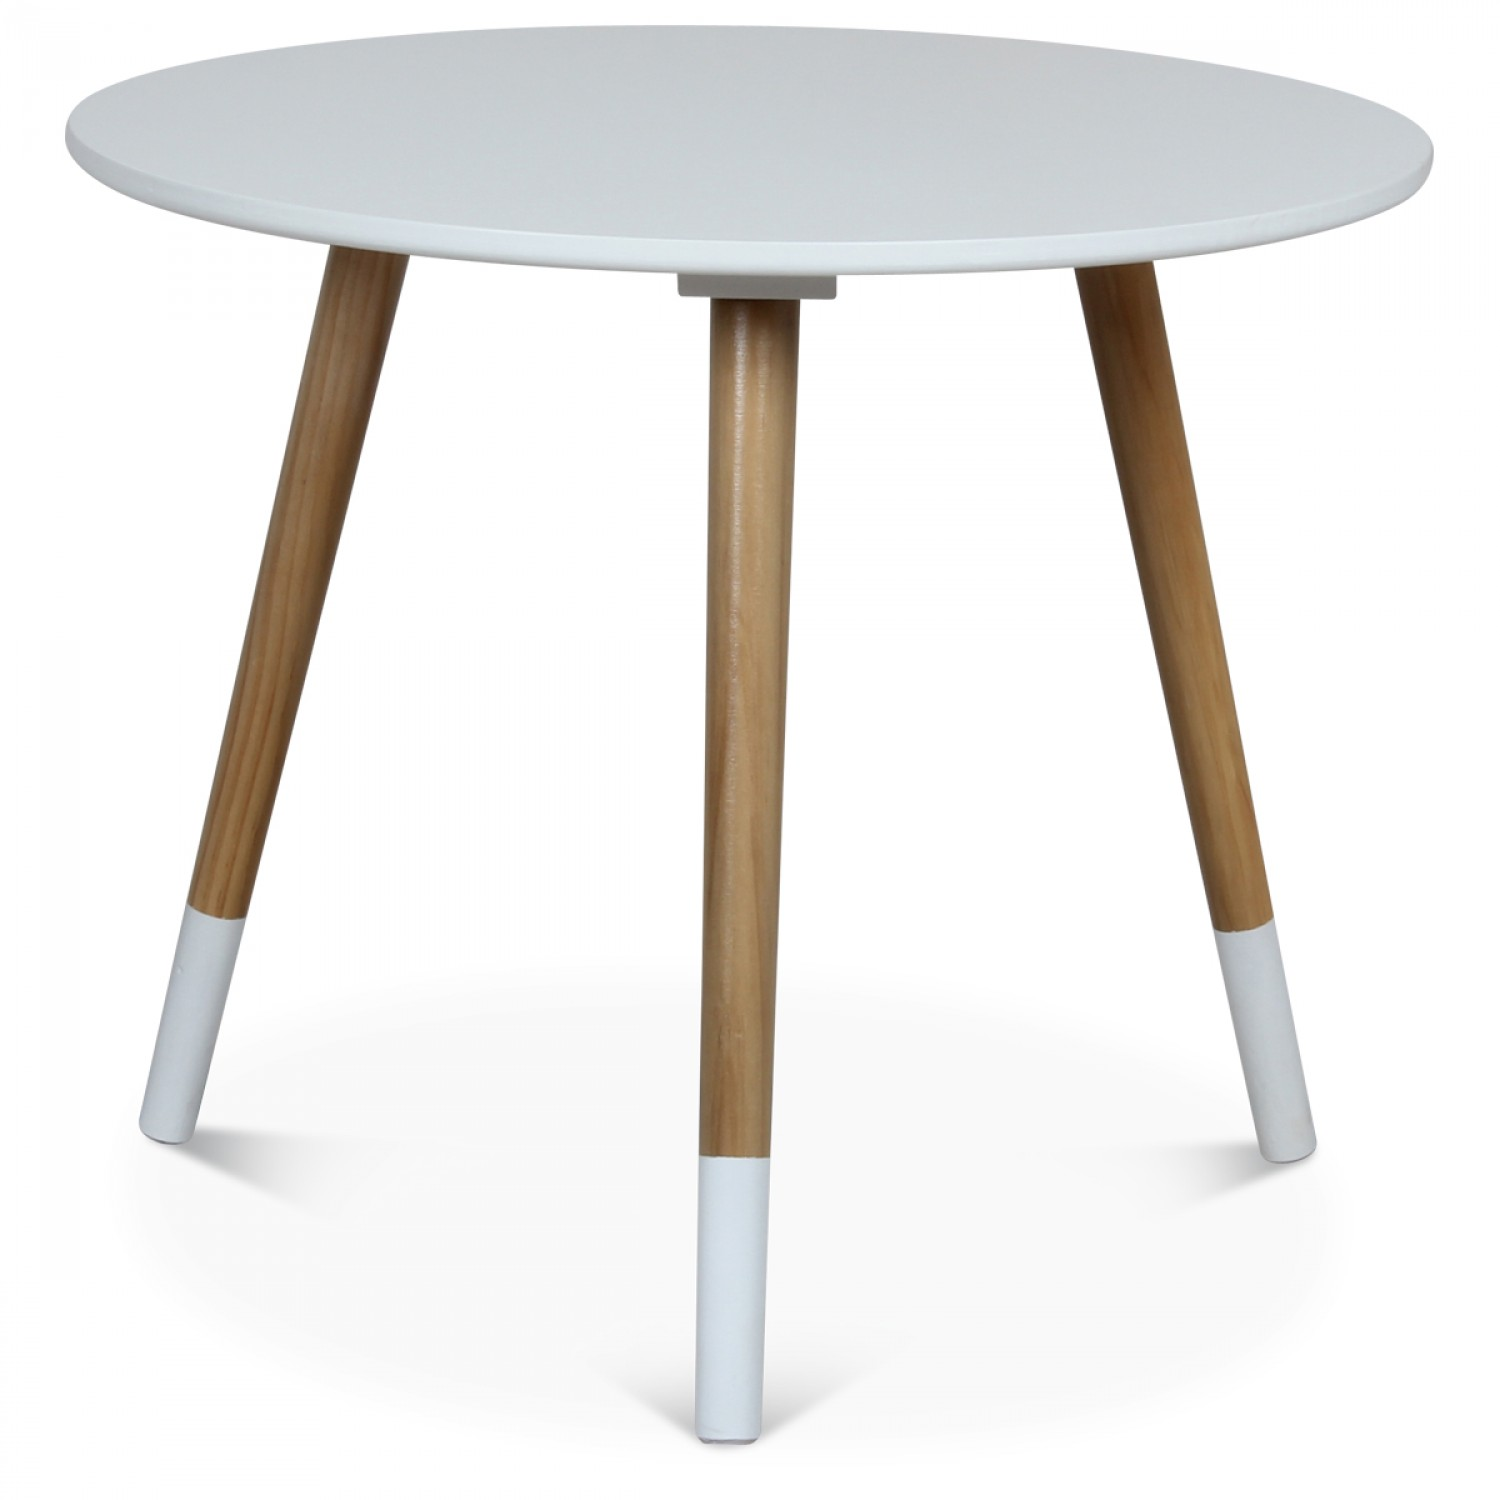 Table Basse Blanche Scandinave Table Basse Scandinave Blanche FÜskit Diamètre 50 Cm